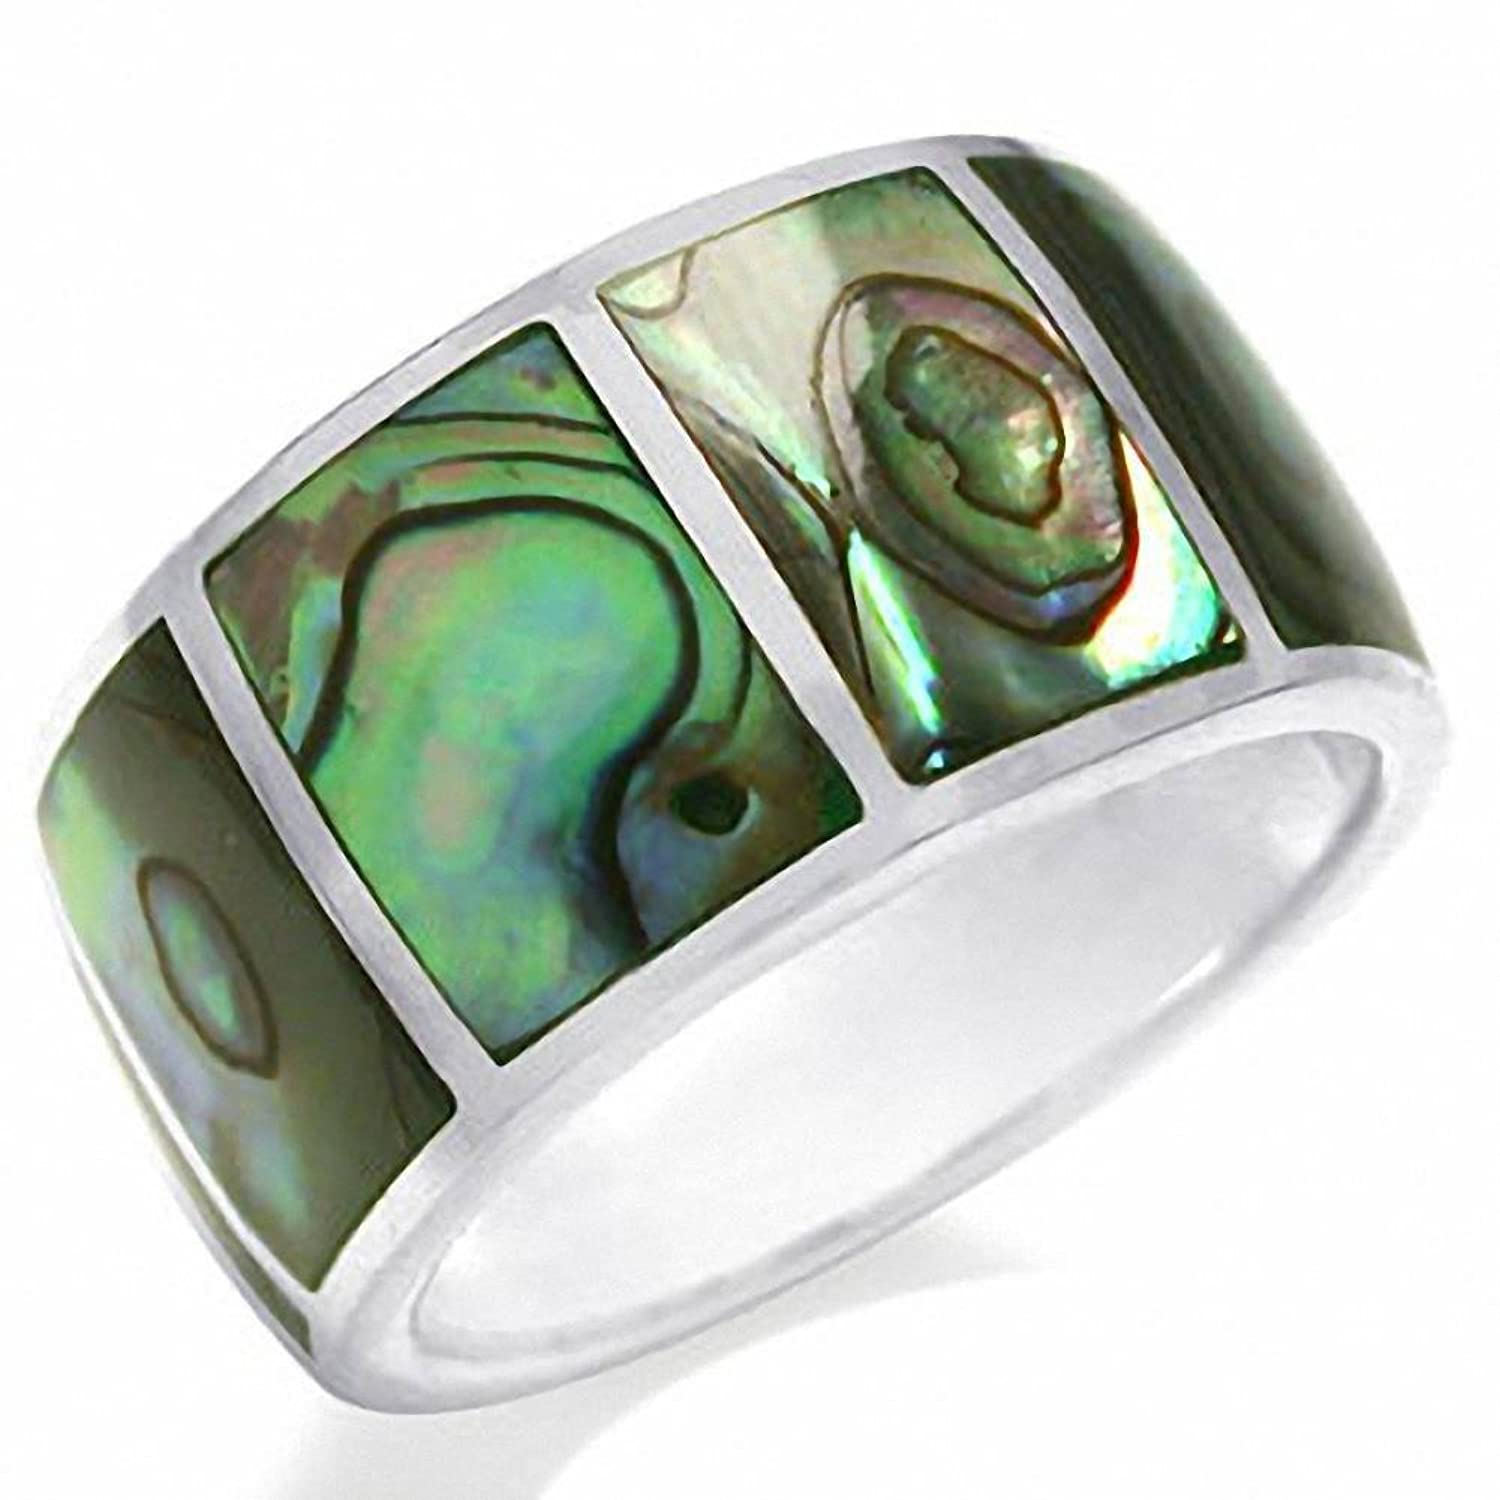 band shell jewelry bling abalone unisex wedding fj rings tungsten ring inlay